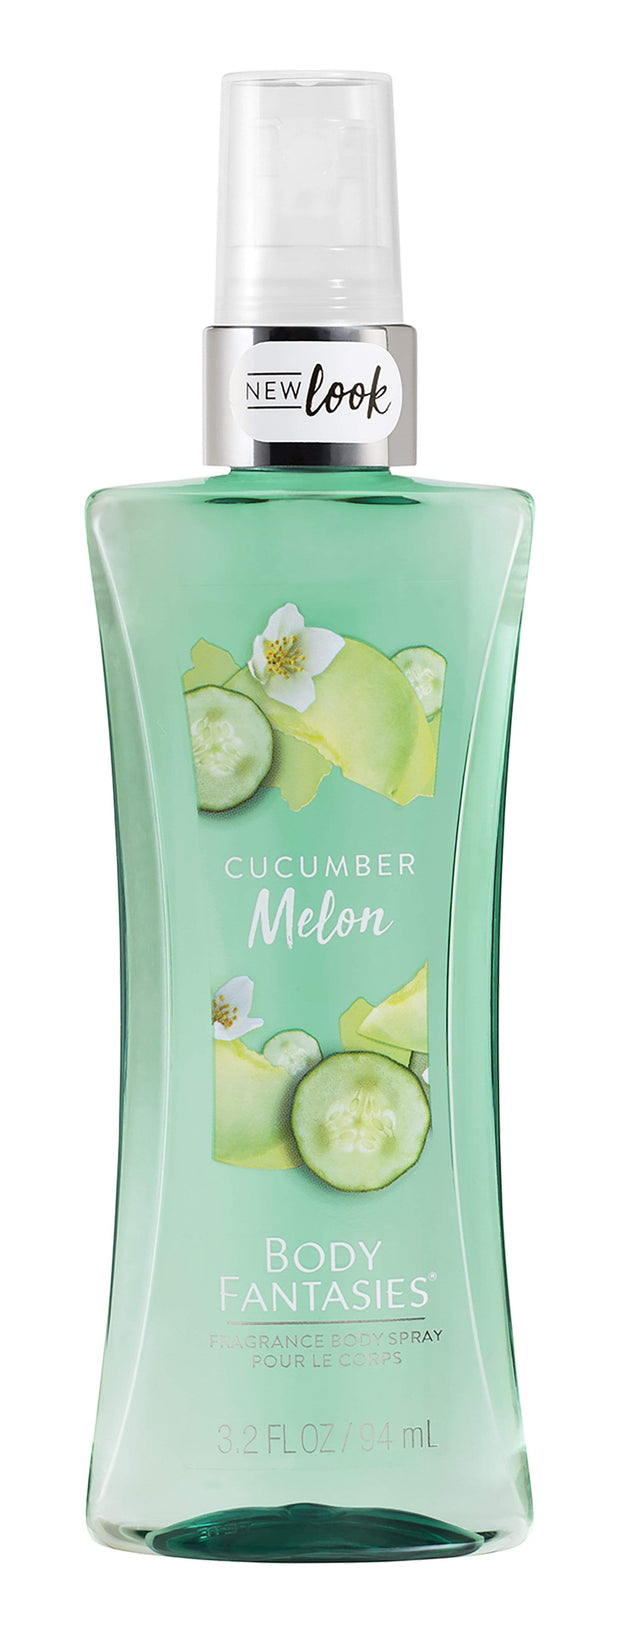 BODY FANTASIES Signature Cucumber Melon Body Spray 94ml3973TN3 - Jashanmal Home